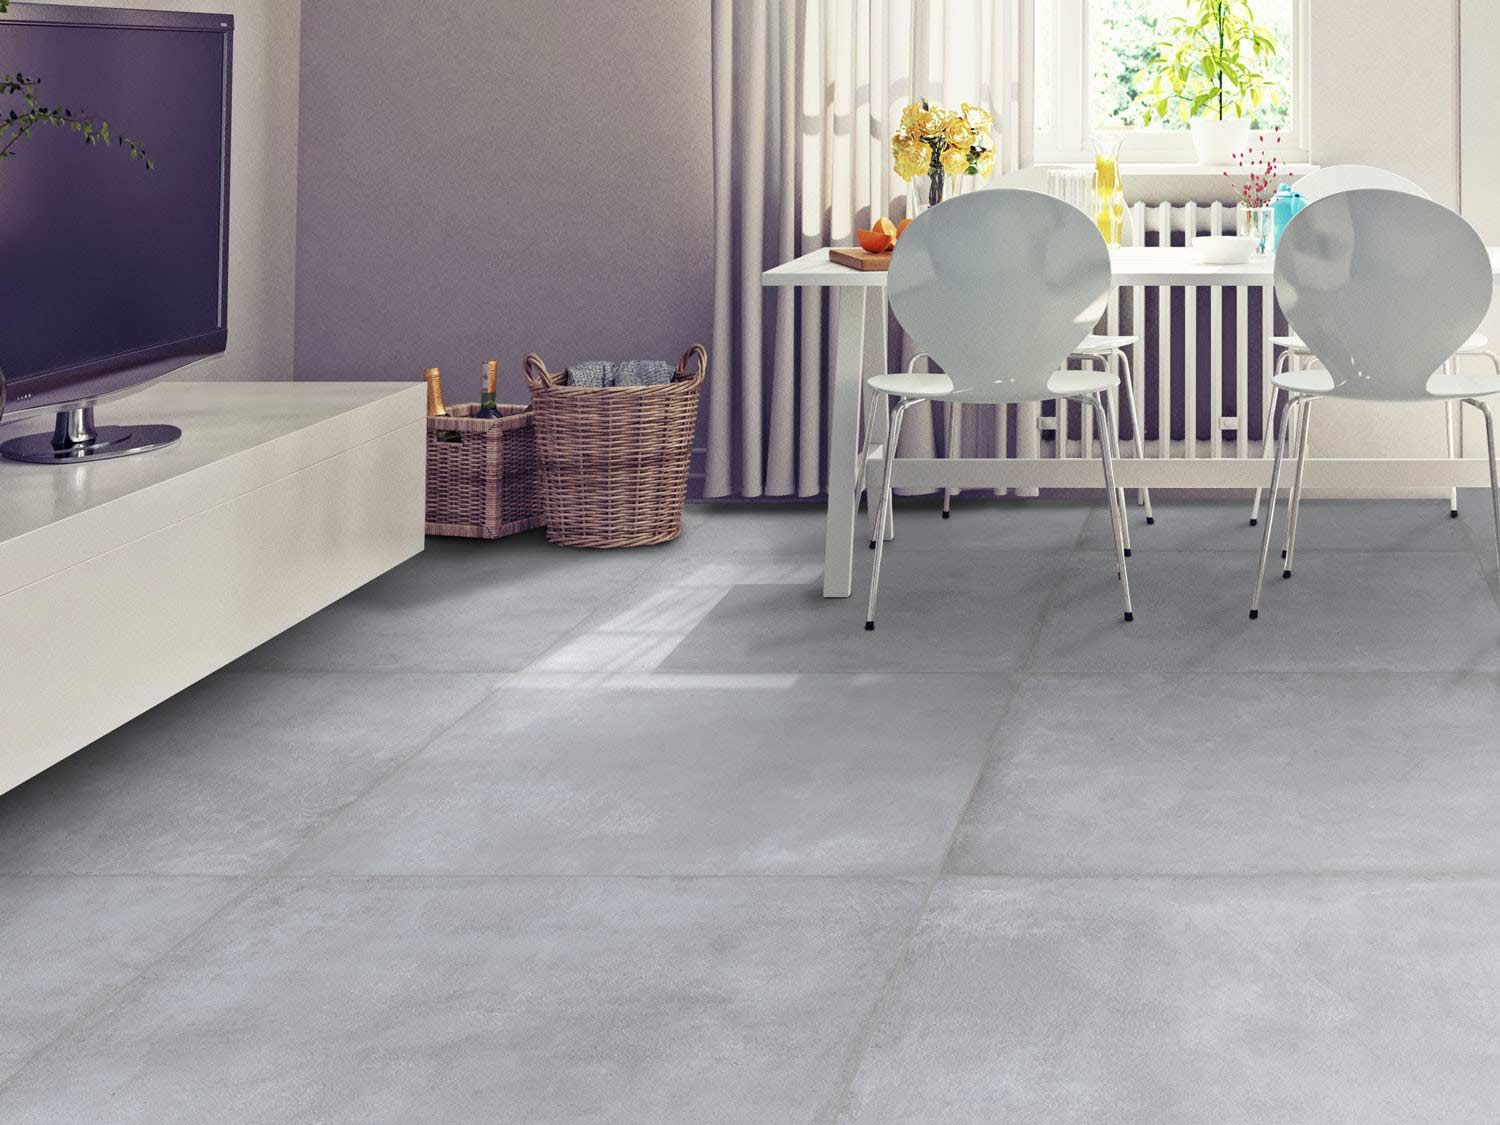 How much do you know about Matt Tiles?